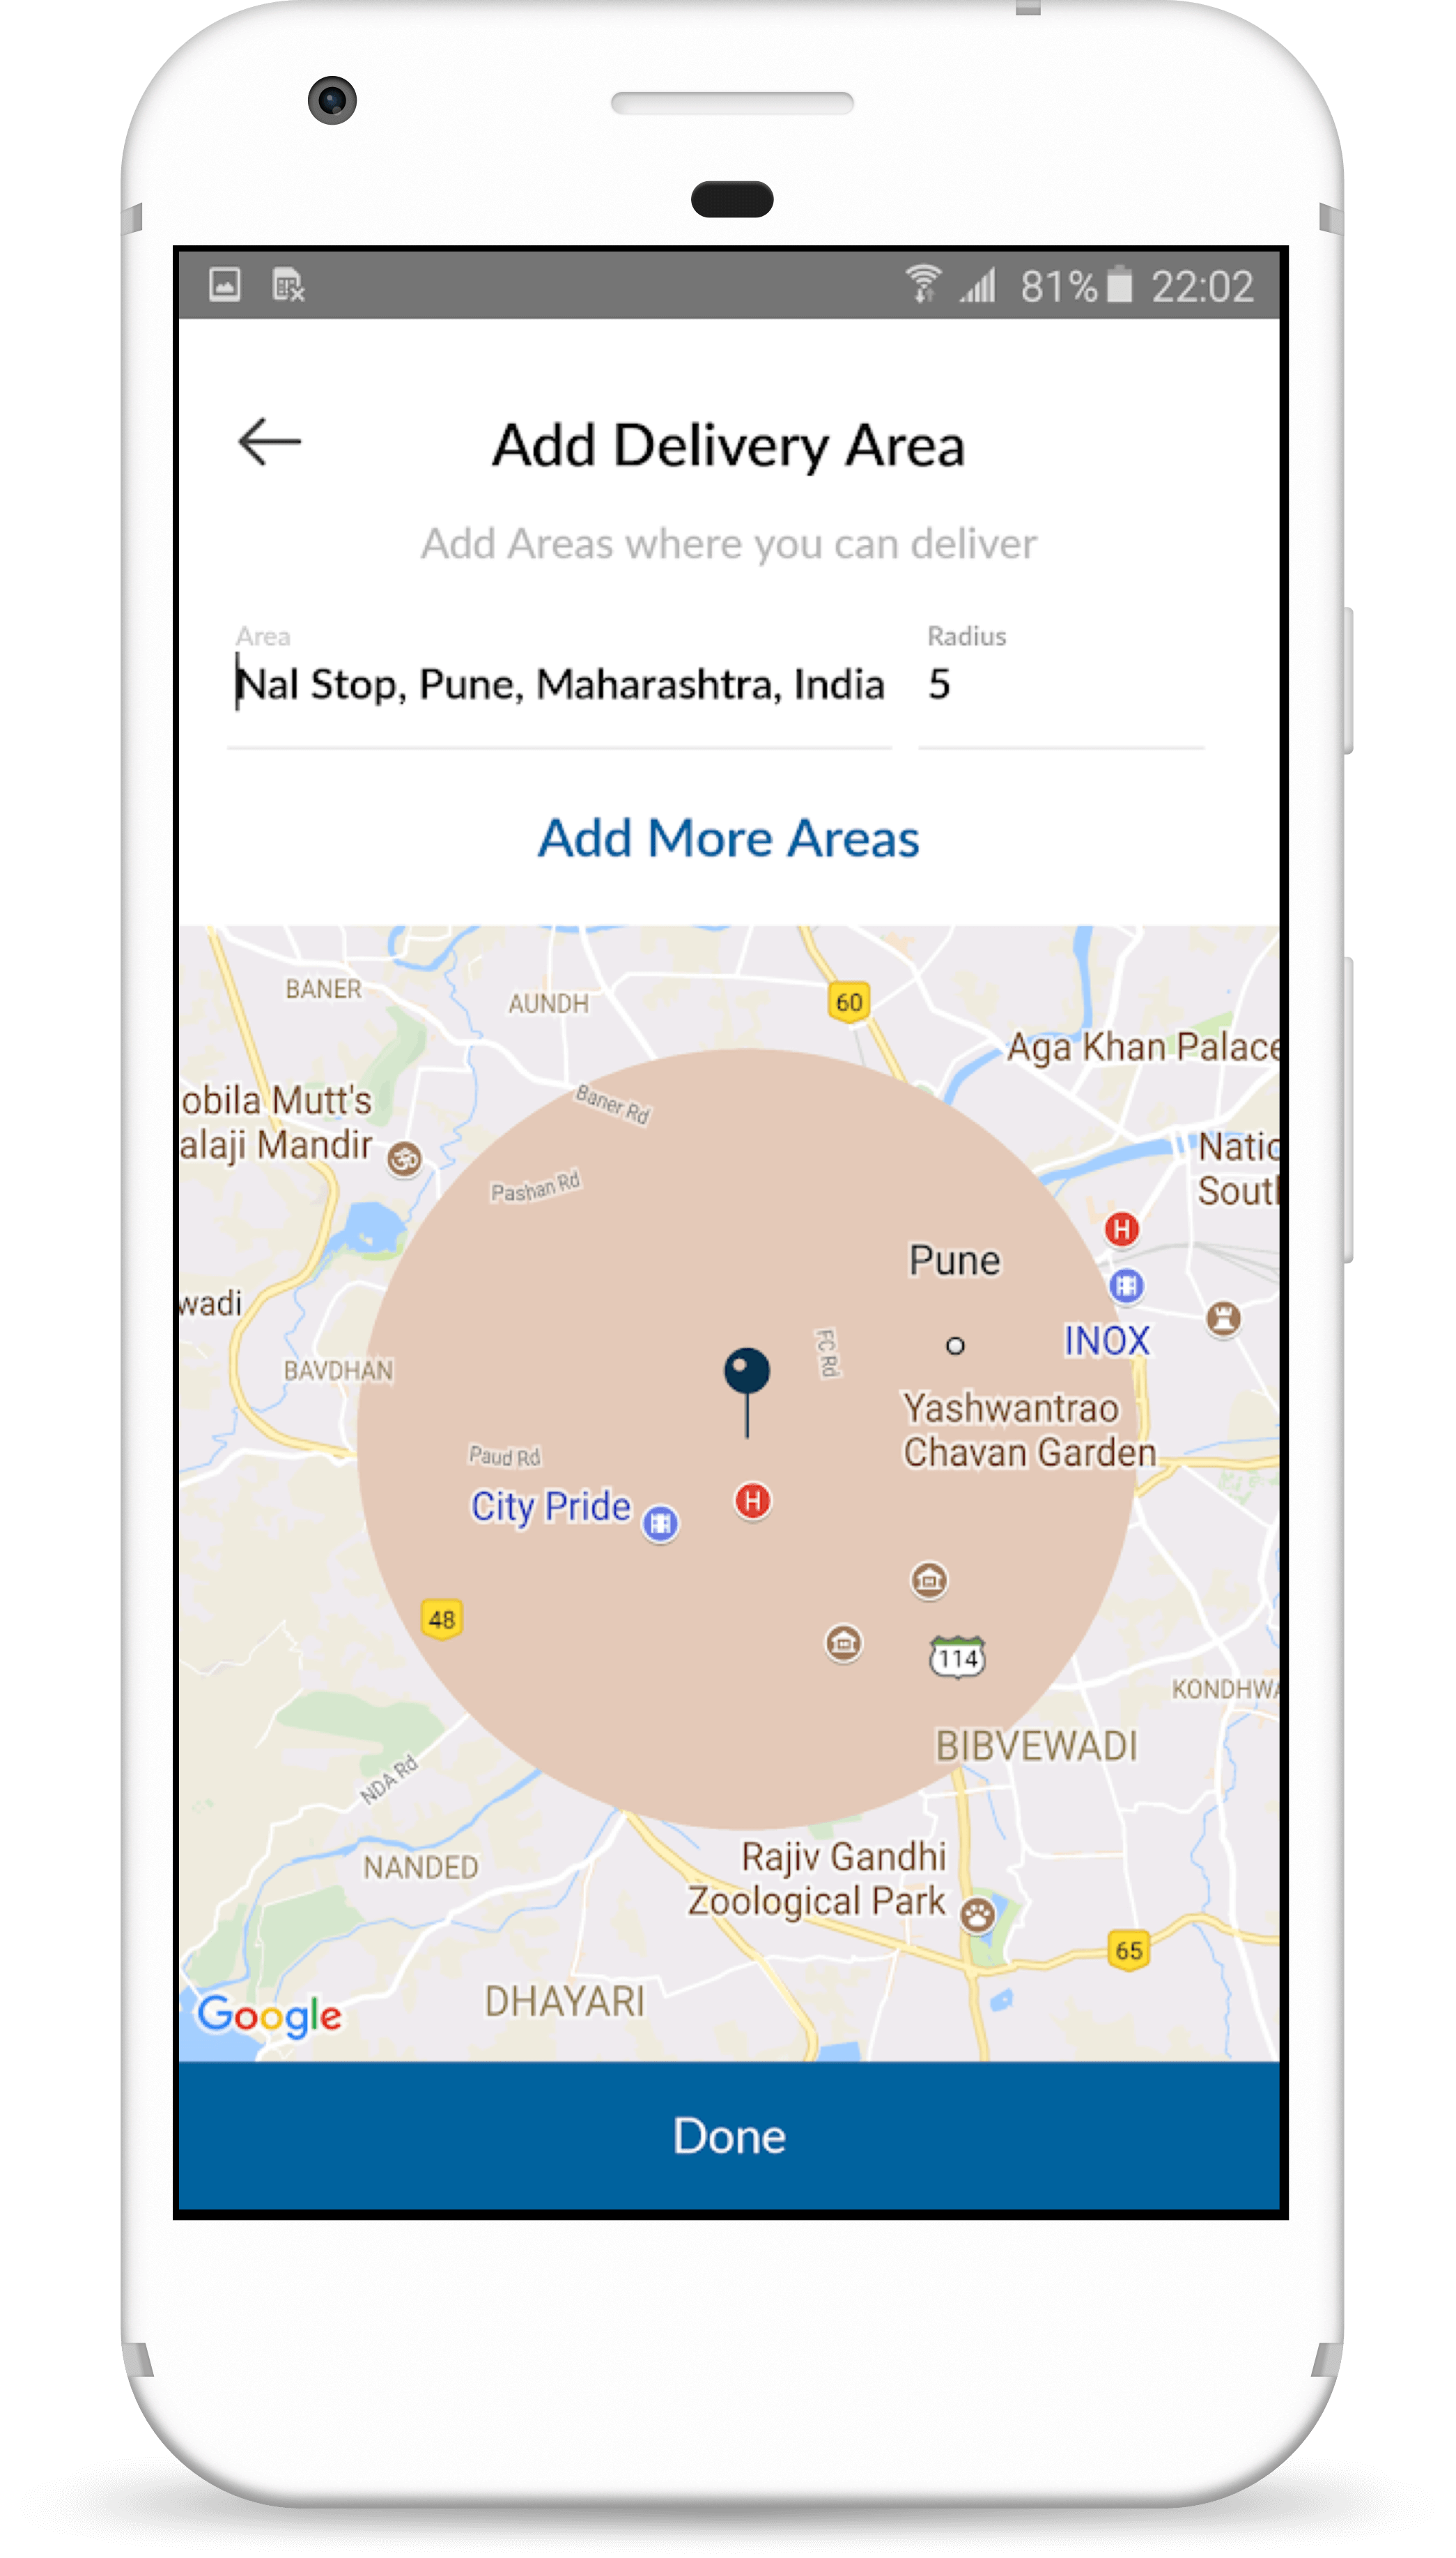 daily-needs-delivery-app-in-pune